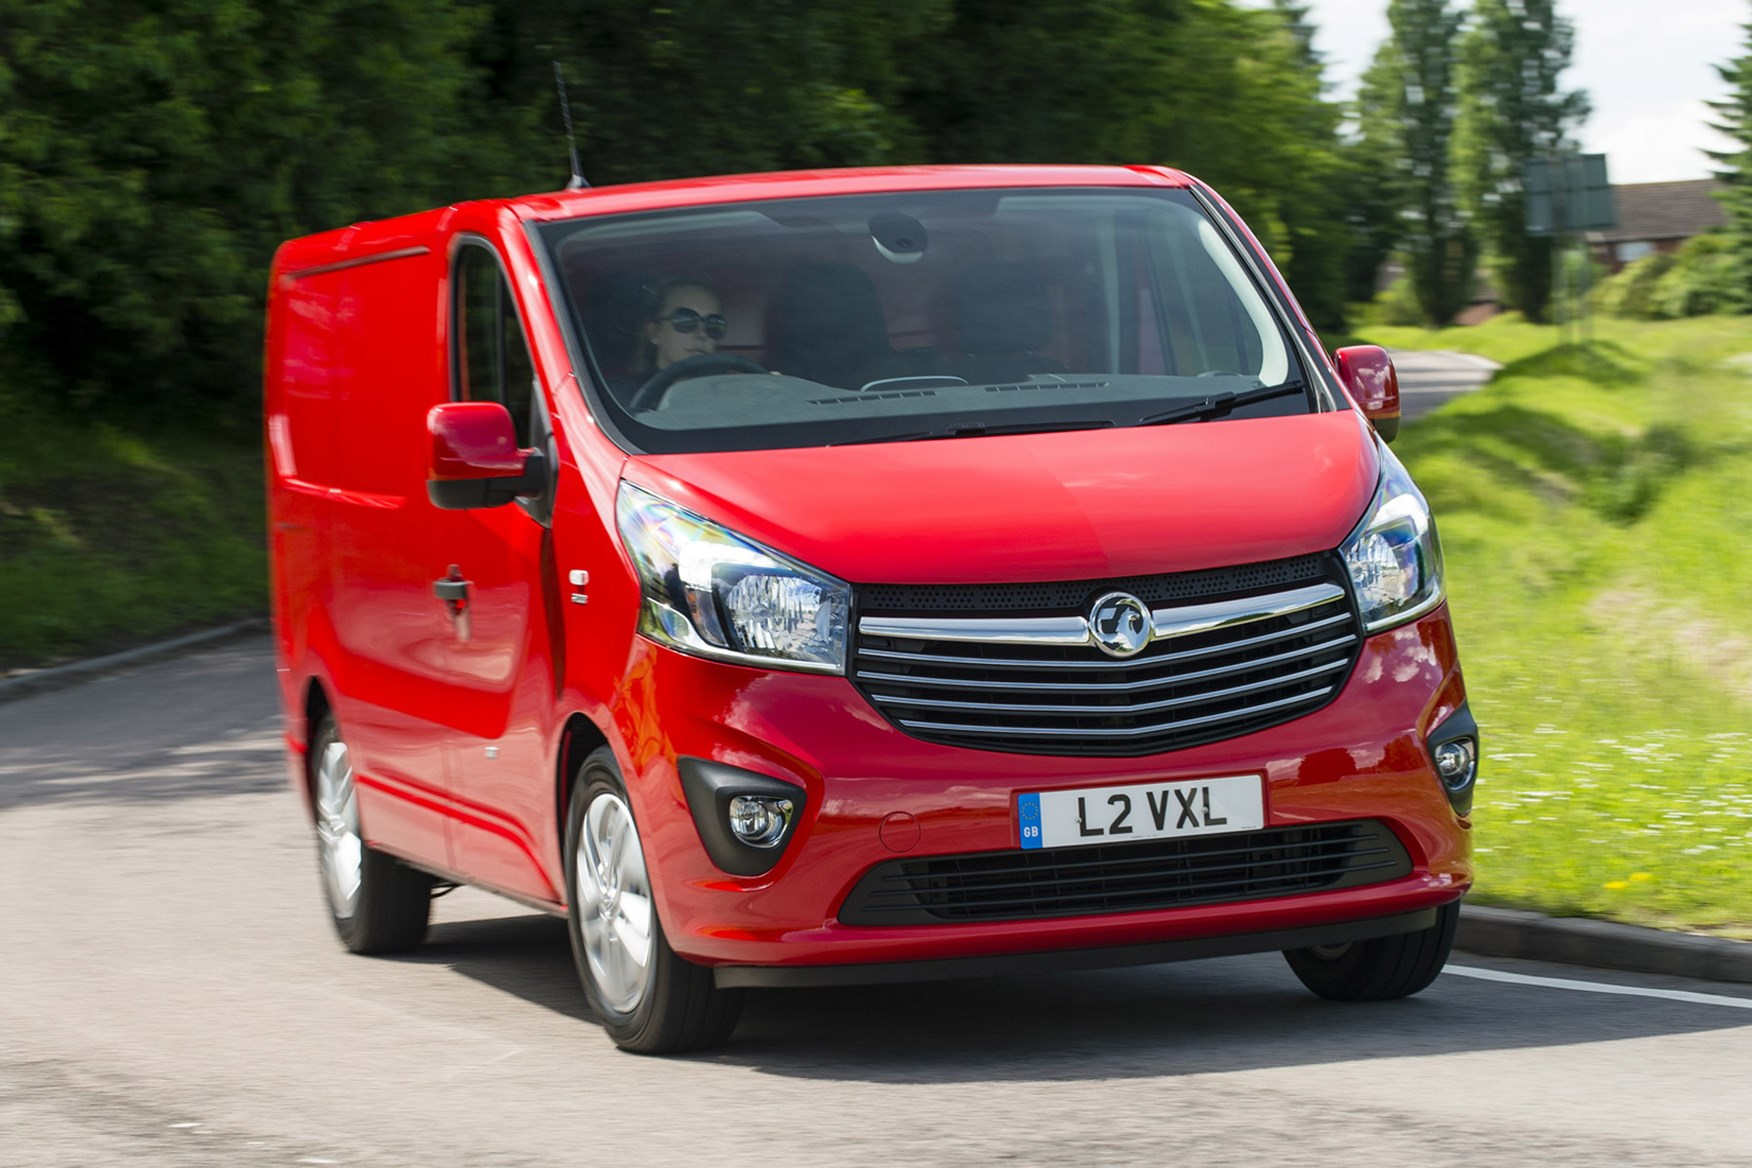 30c63b9f3a Vauxhall Vivaro full review on Parkers Vans - front ...